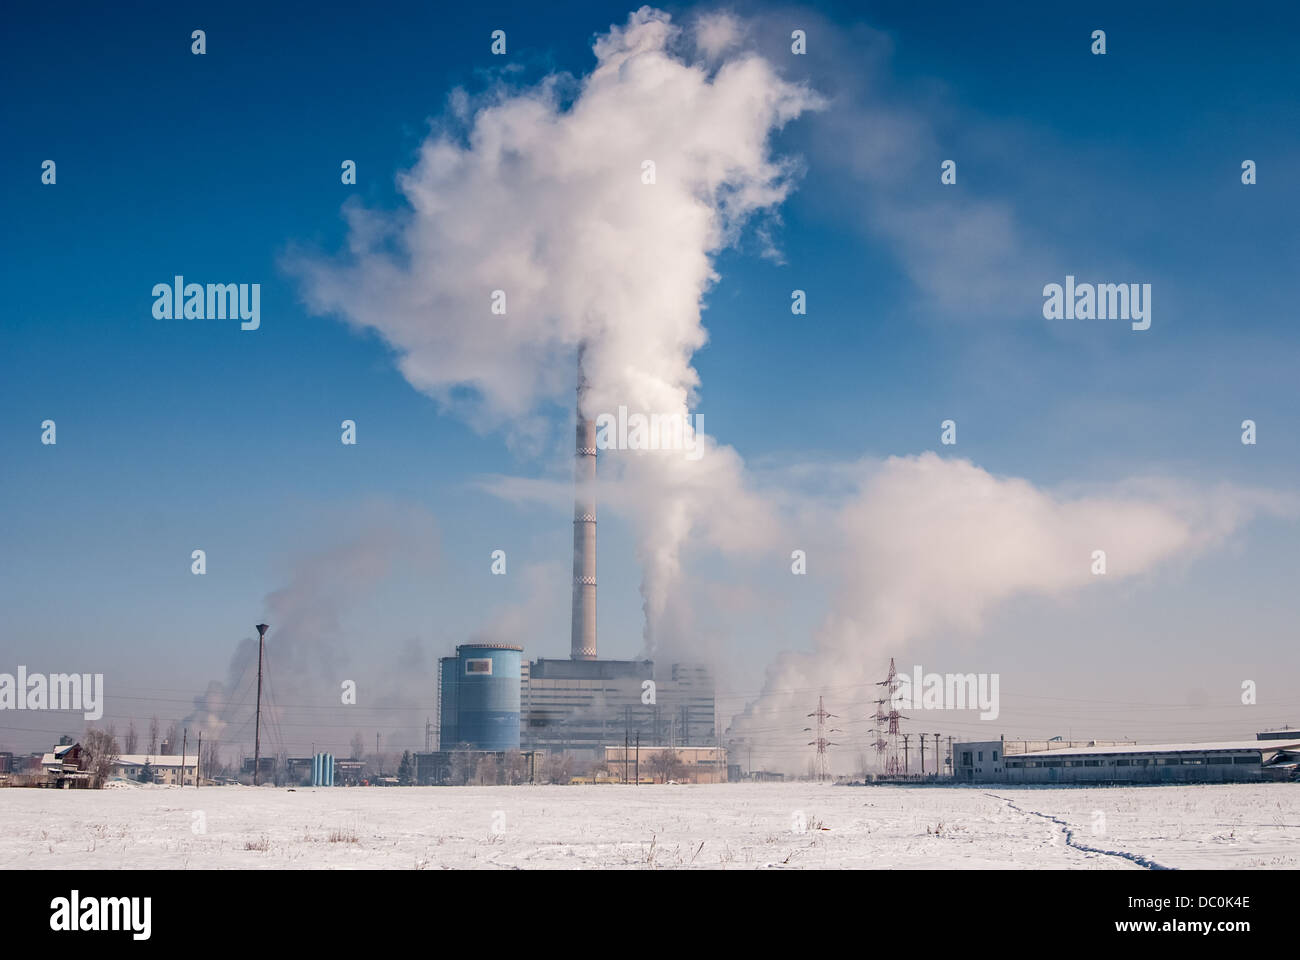 Heavy industry makes problems with a global warming. Smoke and steam cause environmental pollution destroying - Stock Image